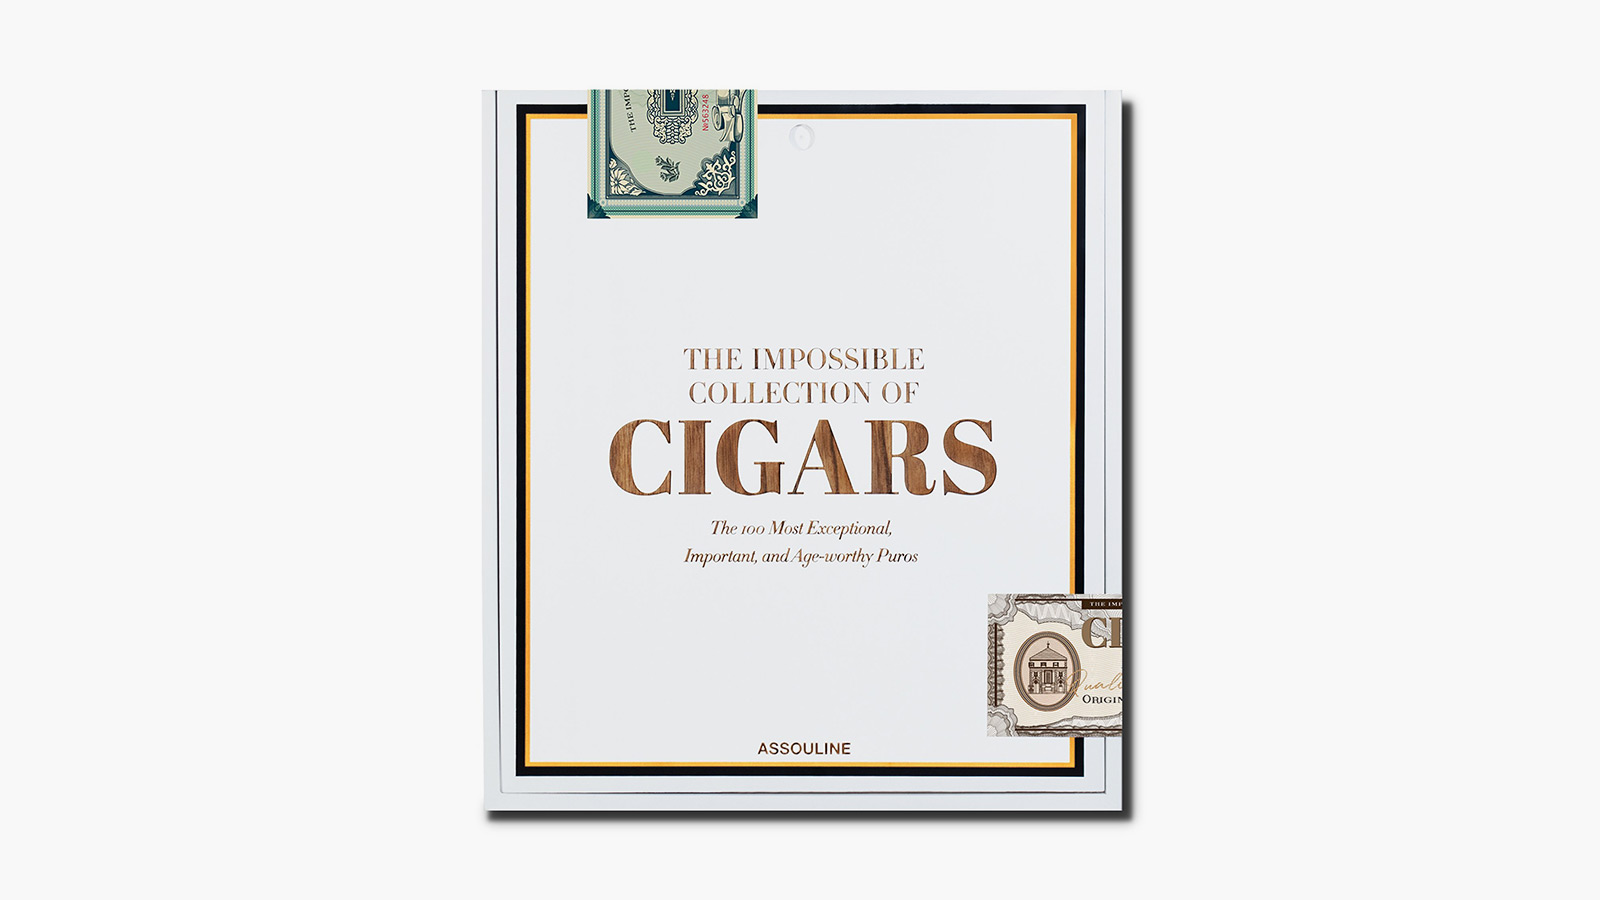 The Impossible Collection of Cigars by Aaron Sigmond